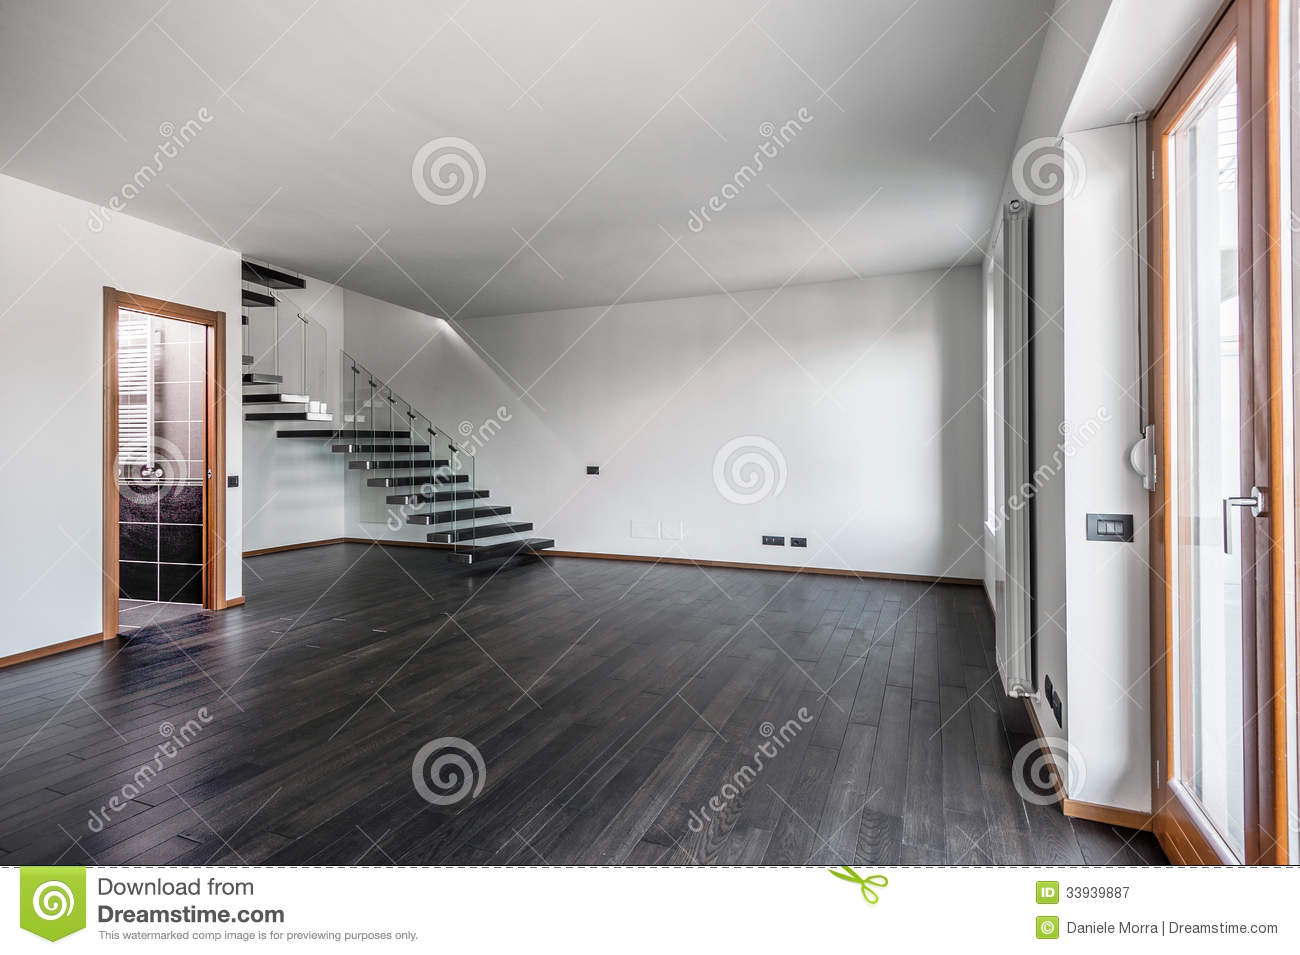 home interior design vector with Royalty Free Stock Photography Modern Empty Interior Dark Parquet Staircase Room Unselled Apartment Image33939887 on Royalty Free Stock Photos Drawing Room Image13511178 additionally Creative Wallpapers additionally Vector Window Pink Shutters Transparent Curtains 627444149 moreover 3710 0 furthermore Stock Images Kitchen Stone Fireplace Image13028824.